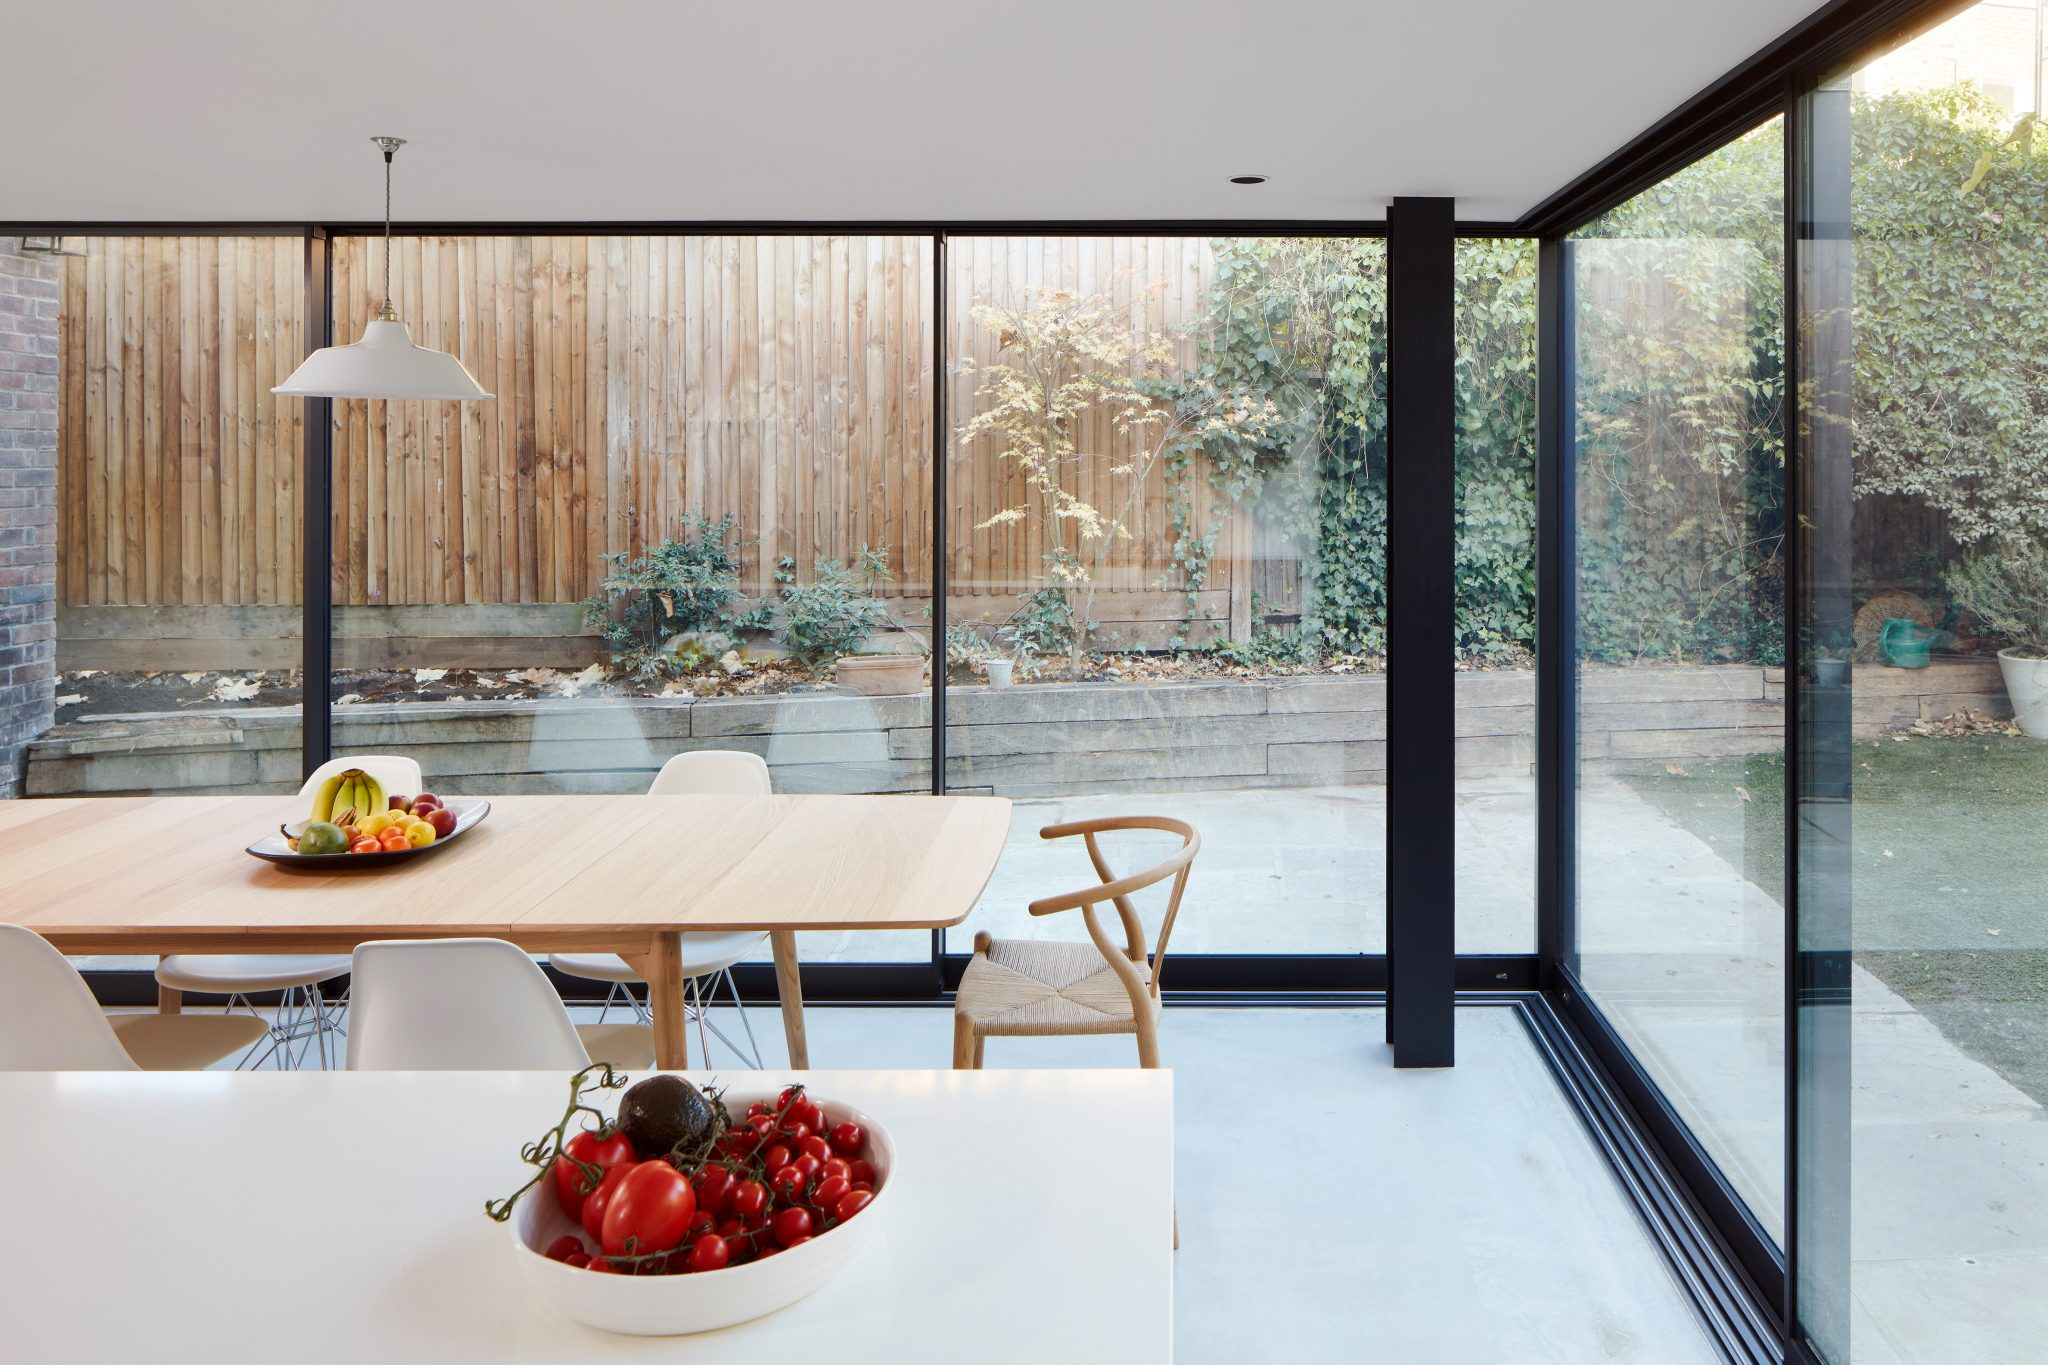 Robert Rhodes Architecture and Interiors | Architects London